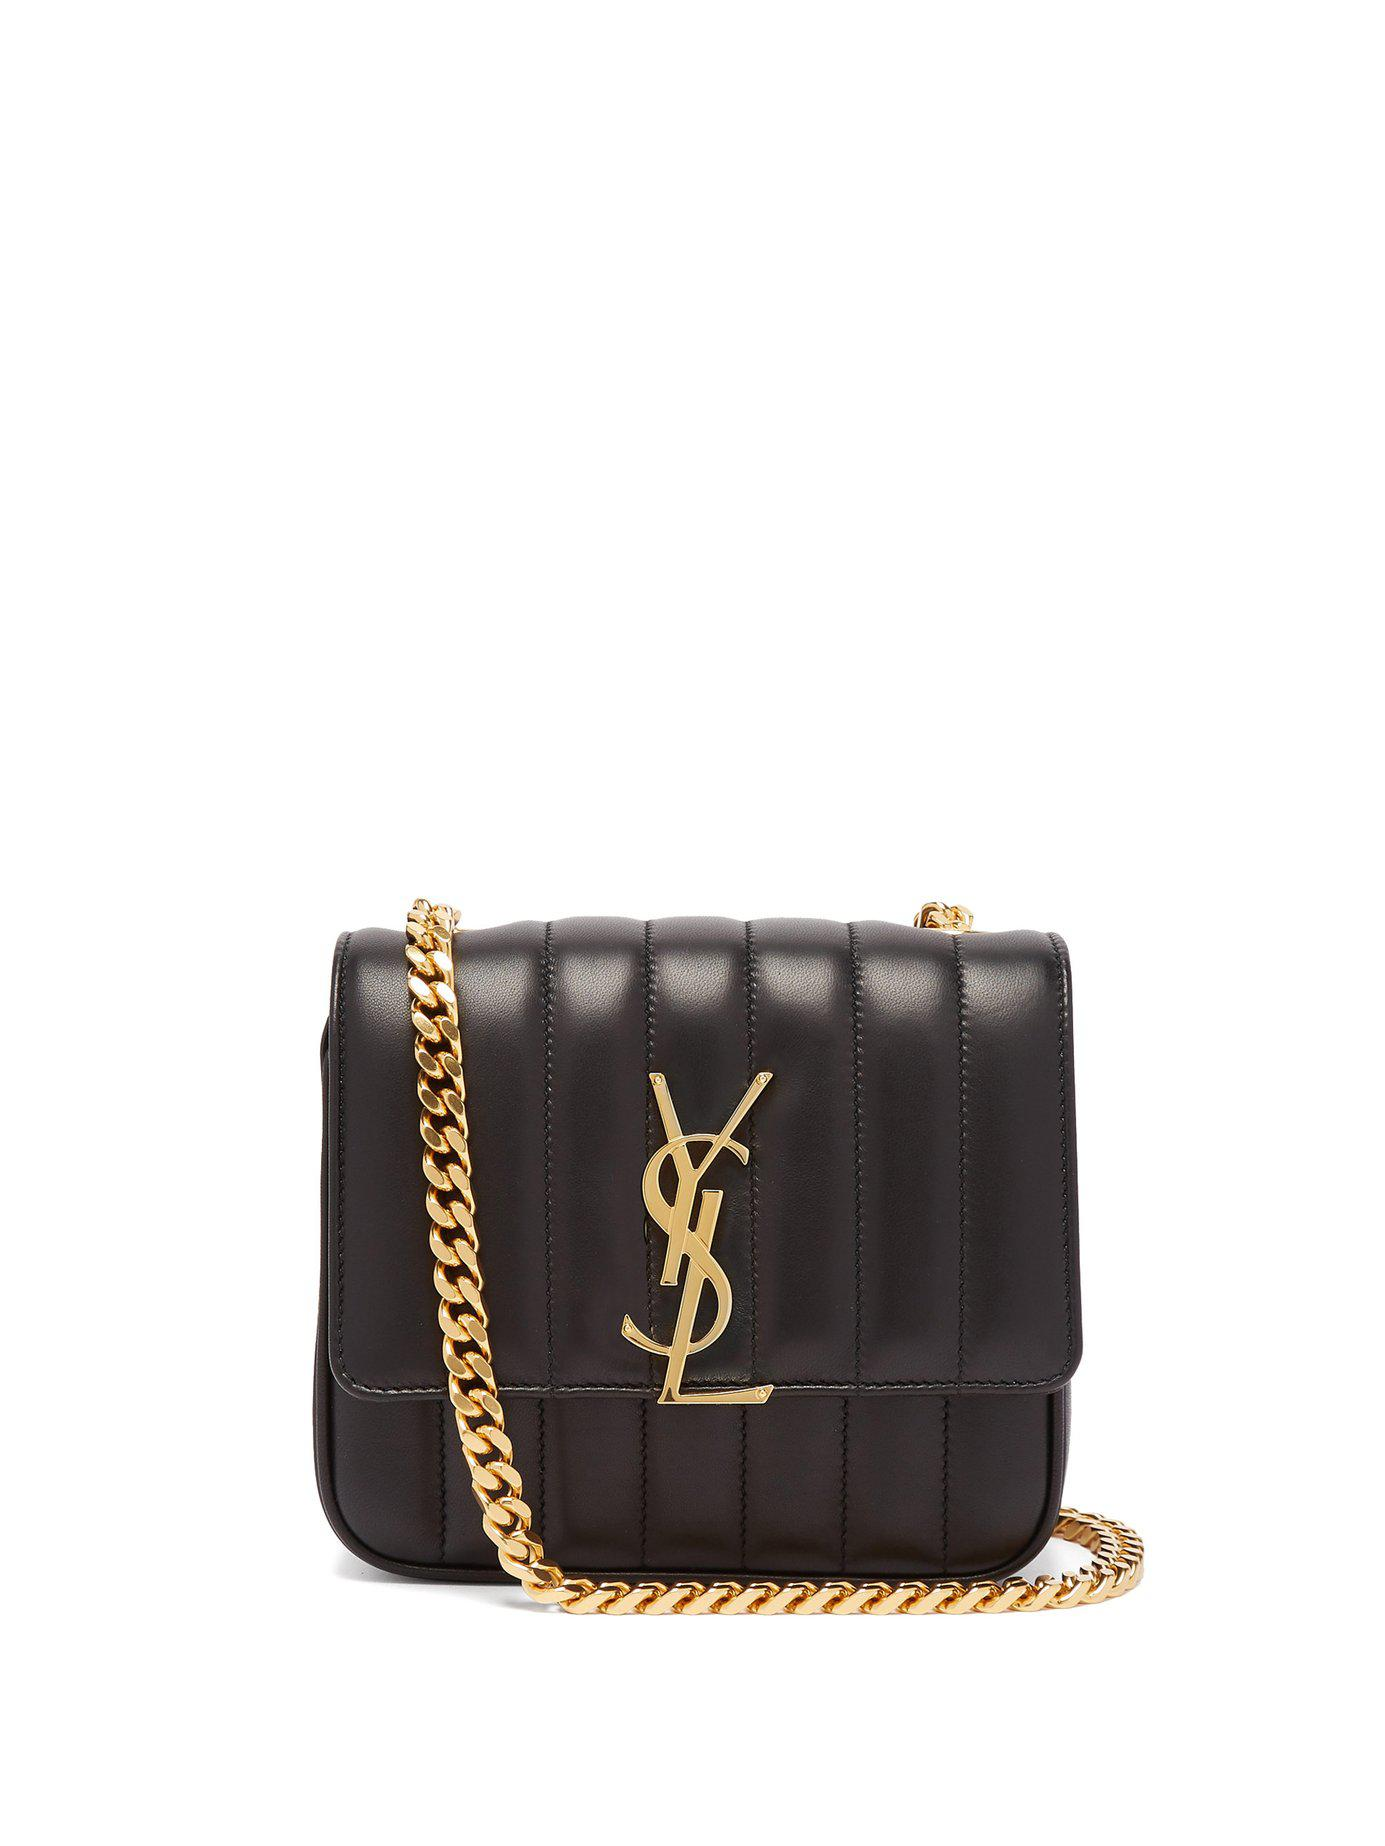 Lyst - Saint Laurent Vicky Small Leather Bag in Black 9b8c155515330